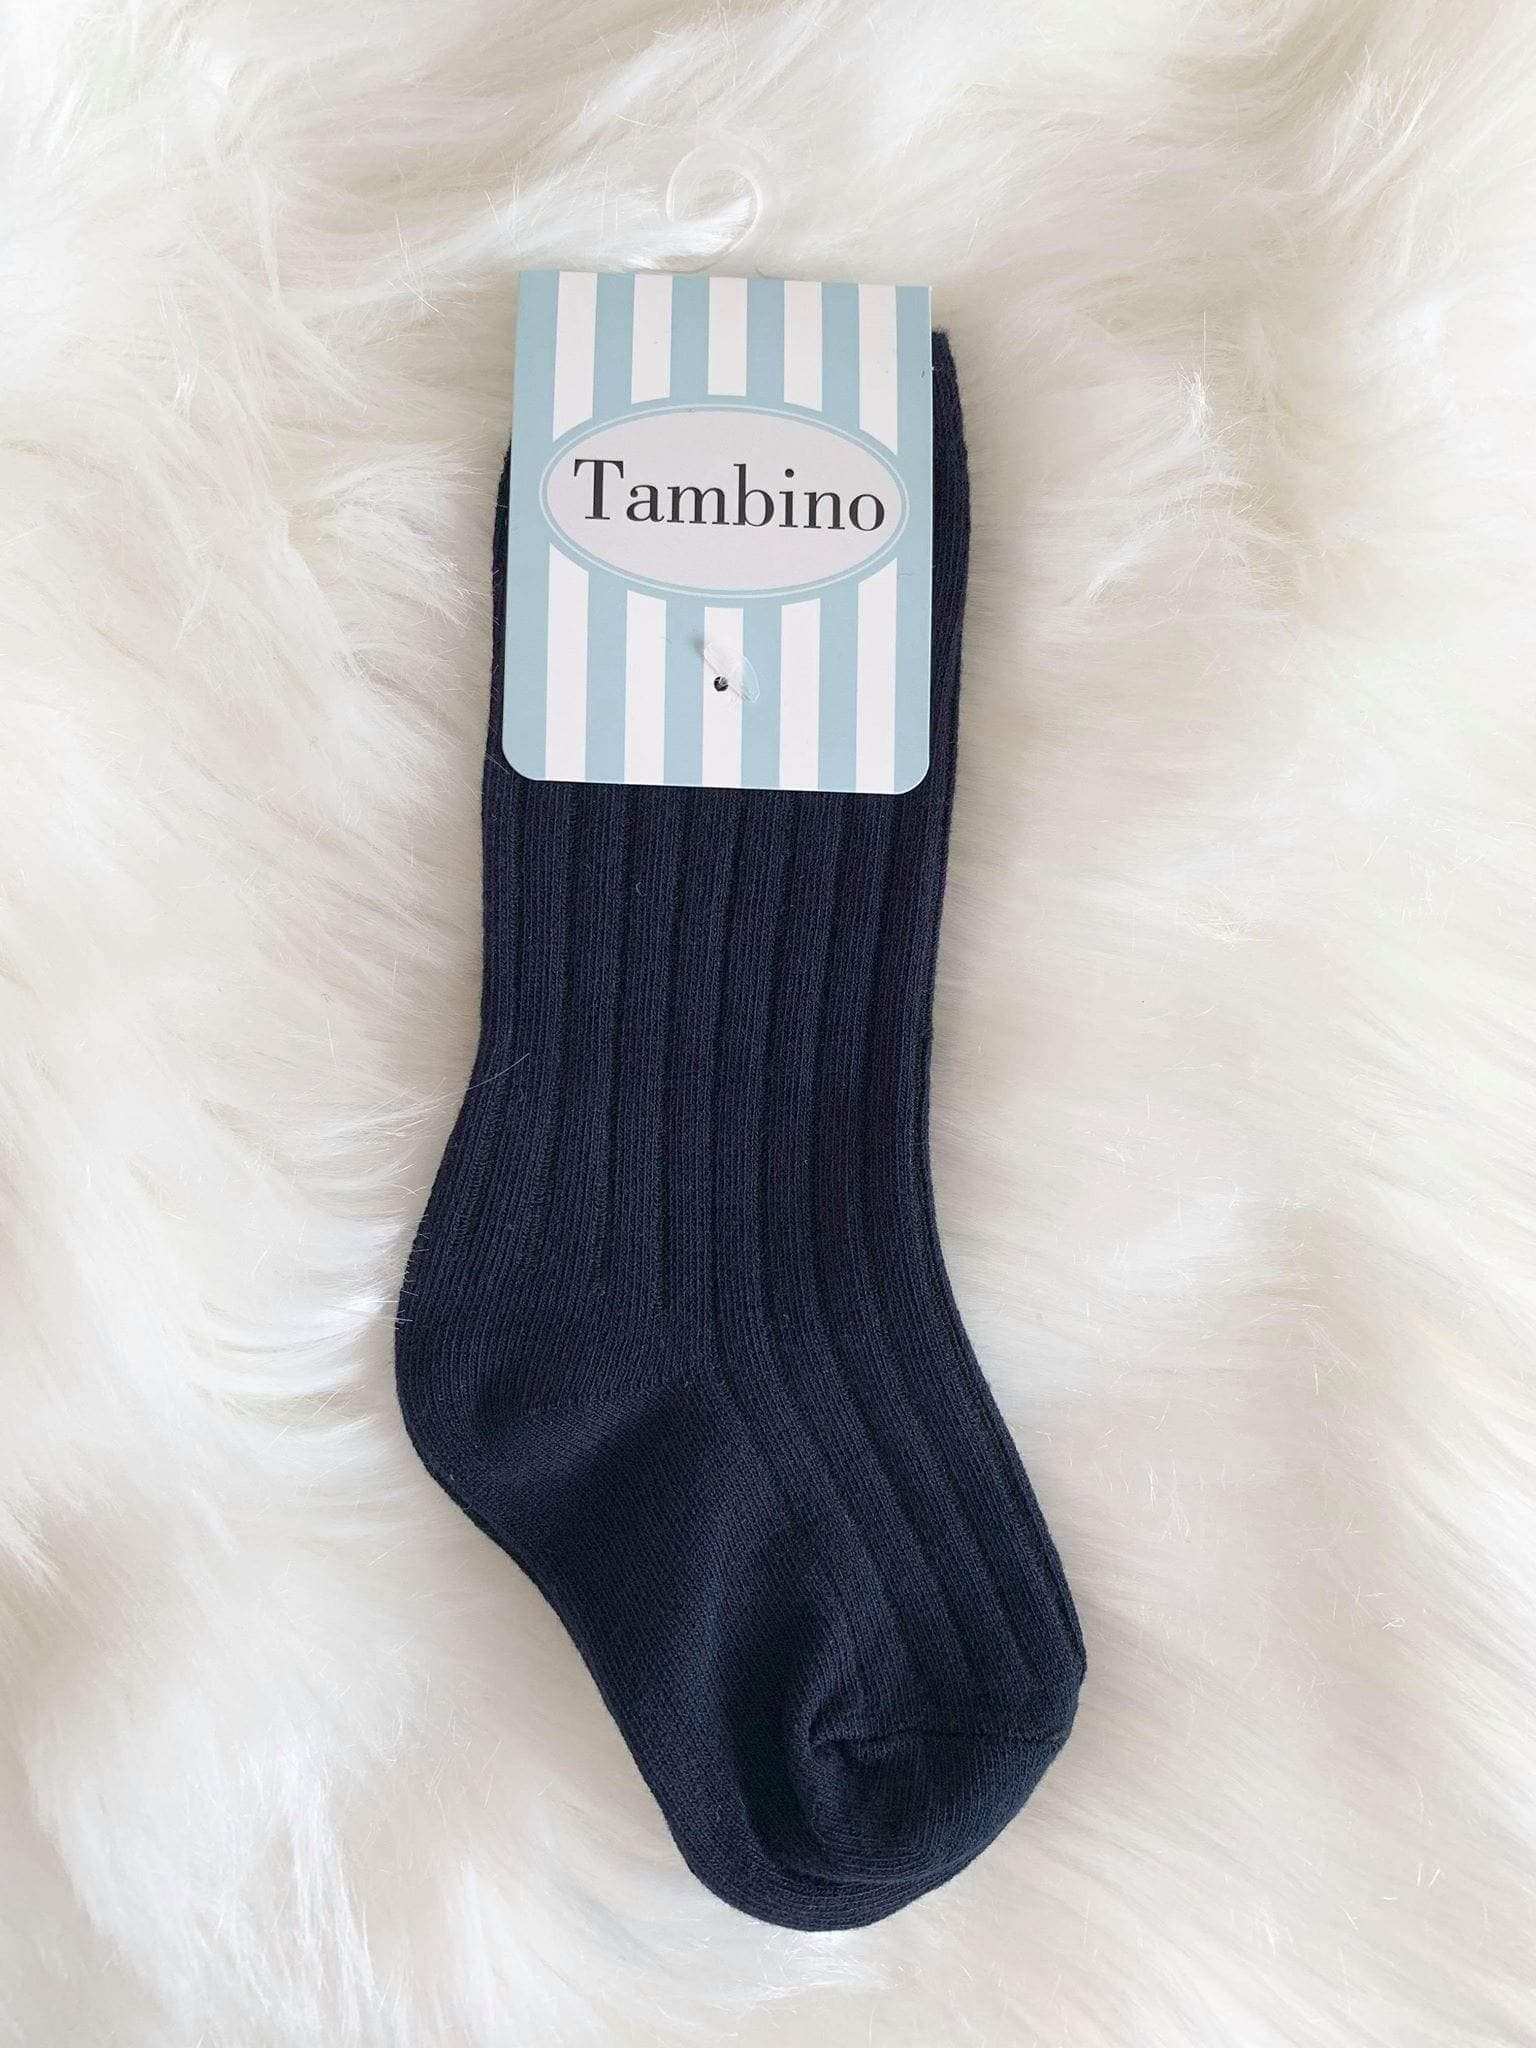 Tambino Footwear Socks - Navy Ribbed Knee HIgh Boys